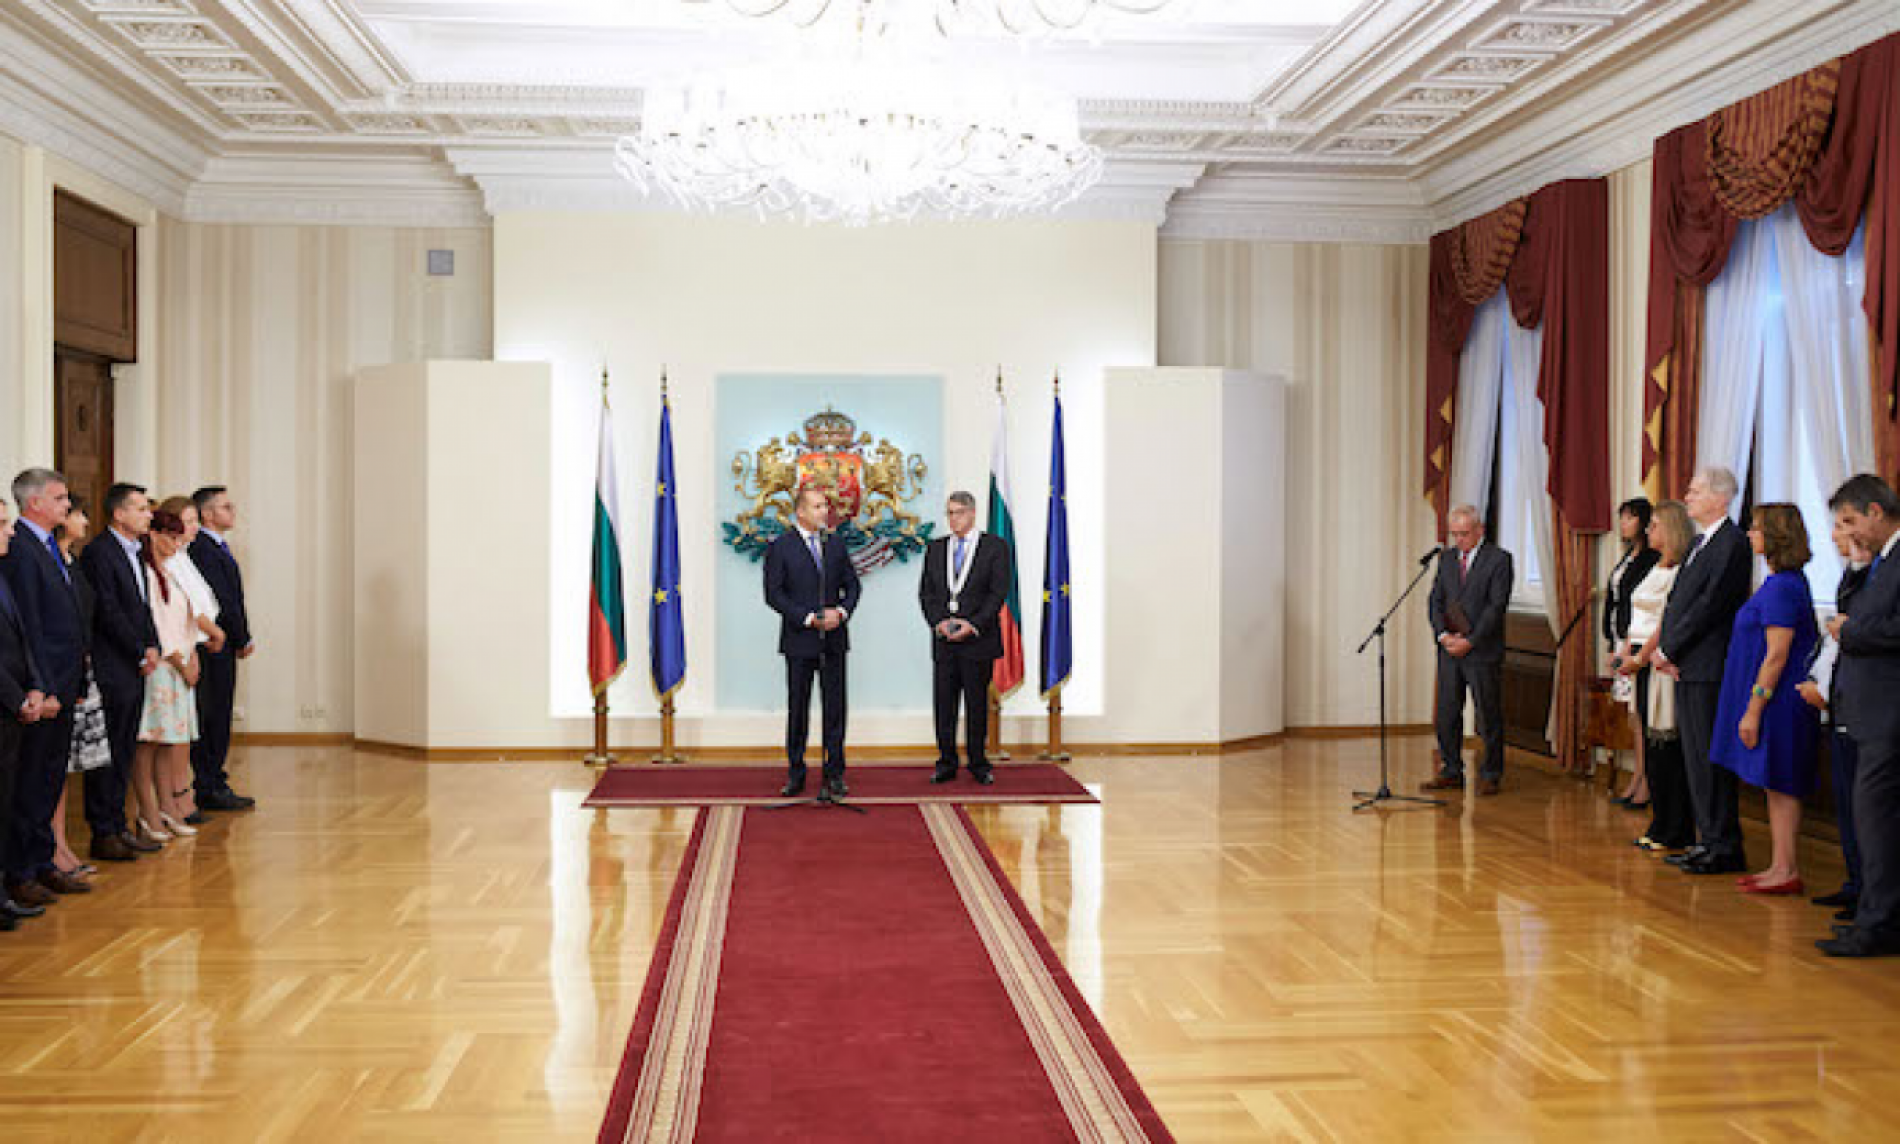 The President presented the Greek Ambassador with the Order of the First Degree